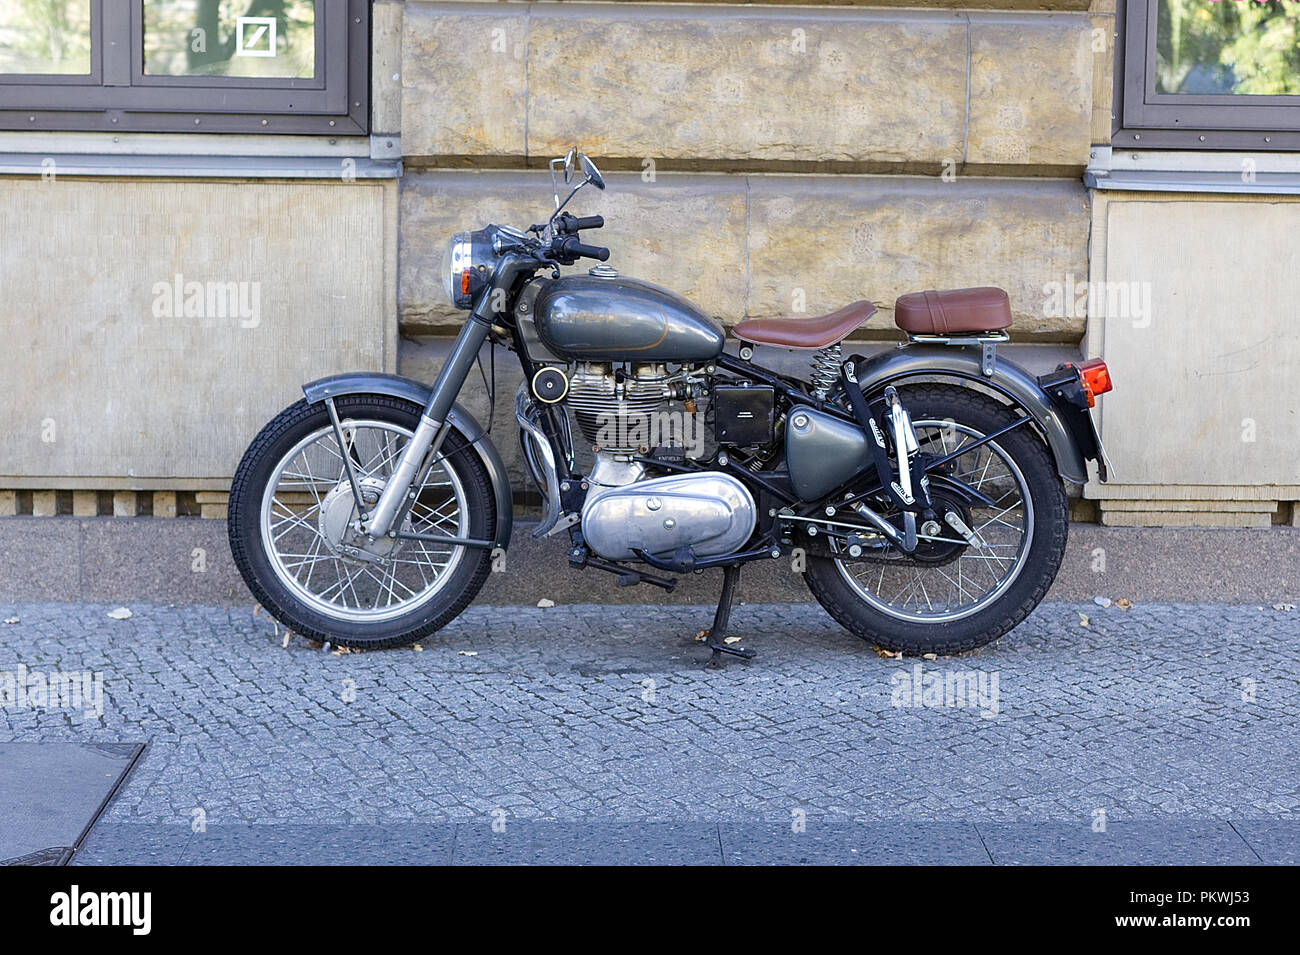 Royal Enfield Motorcycle parked on a pavement on the streets of Berlin - Stock Image